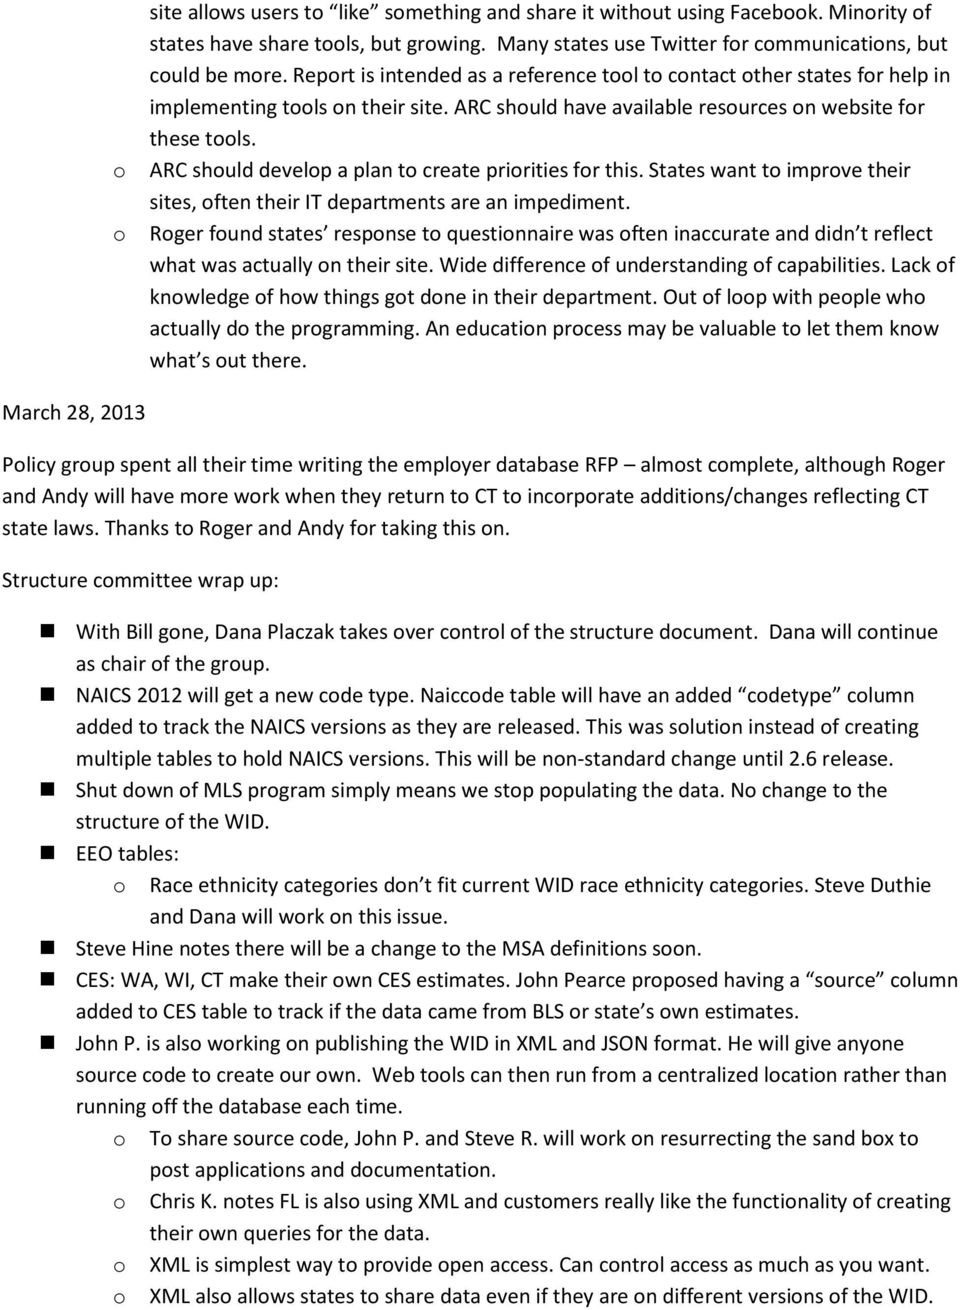 ARC should develop a plan to create priorities for this. States want to improve their sites, often their IT departments are an impediment.